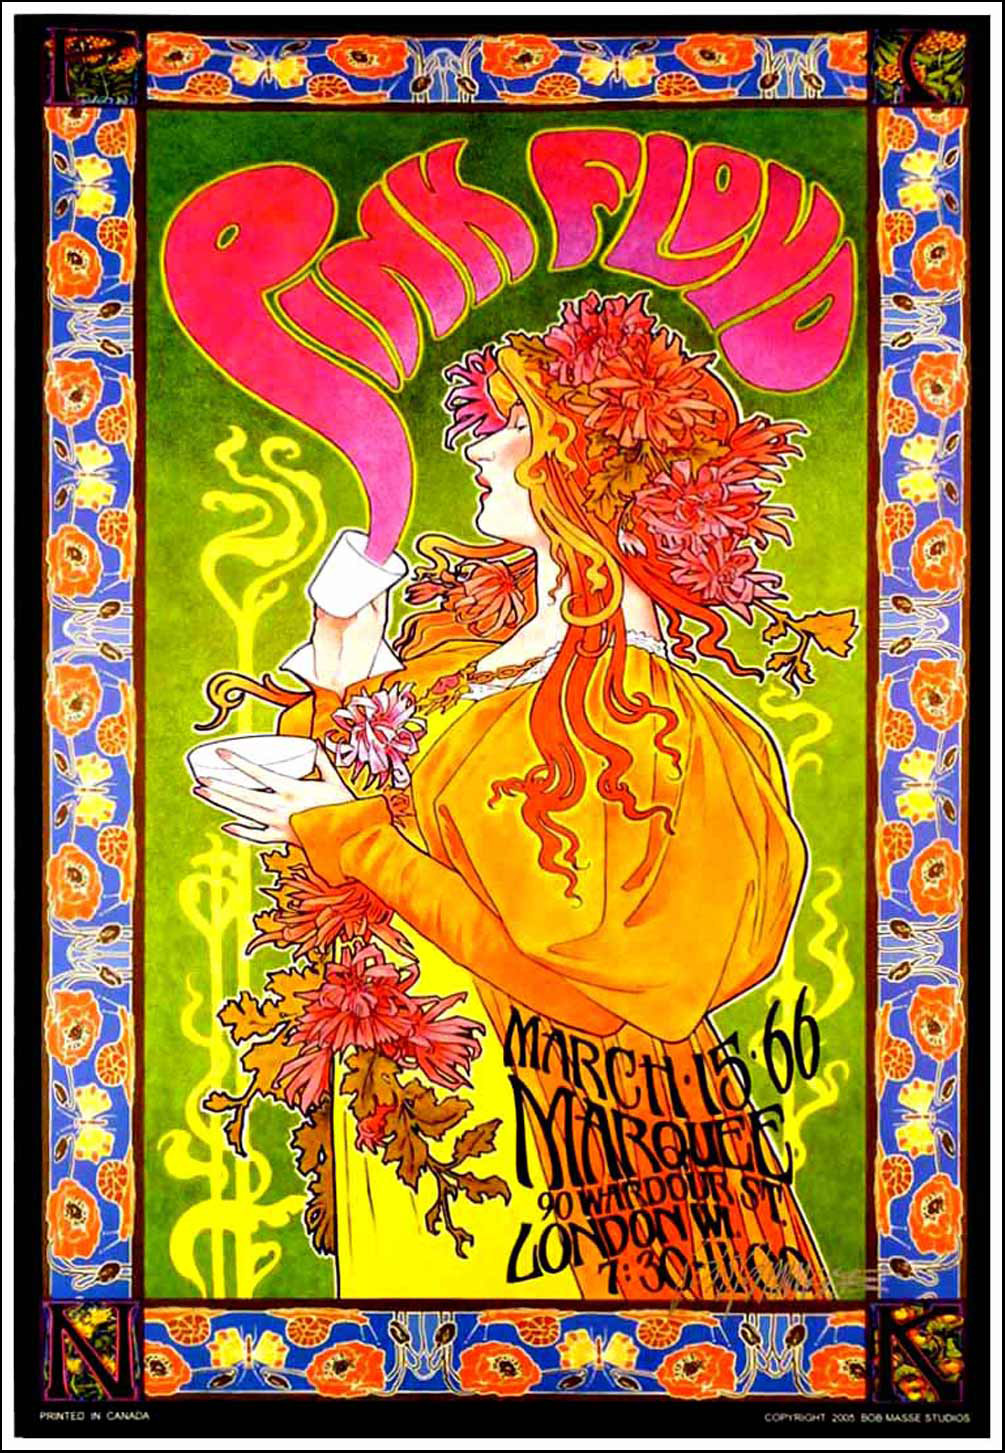 Pink Floyd Marquee Club Poster Mad Hatter S Tea Party